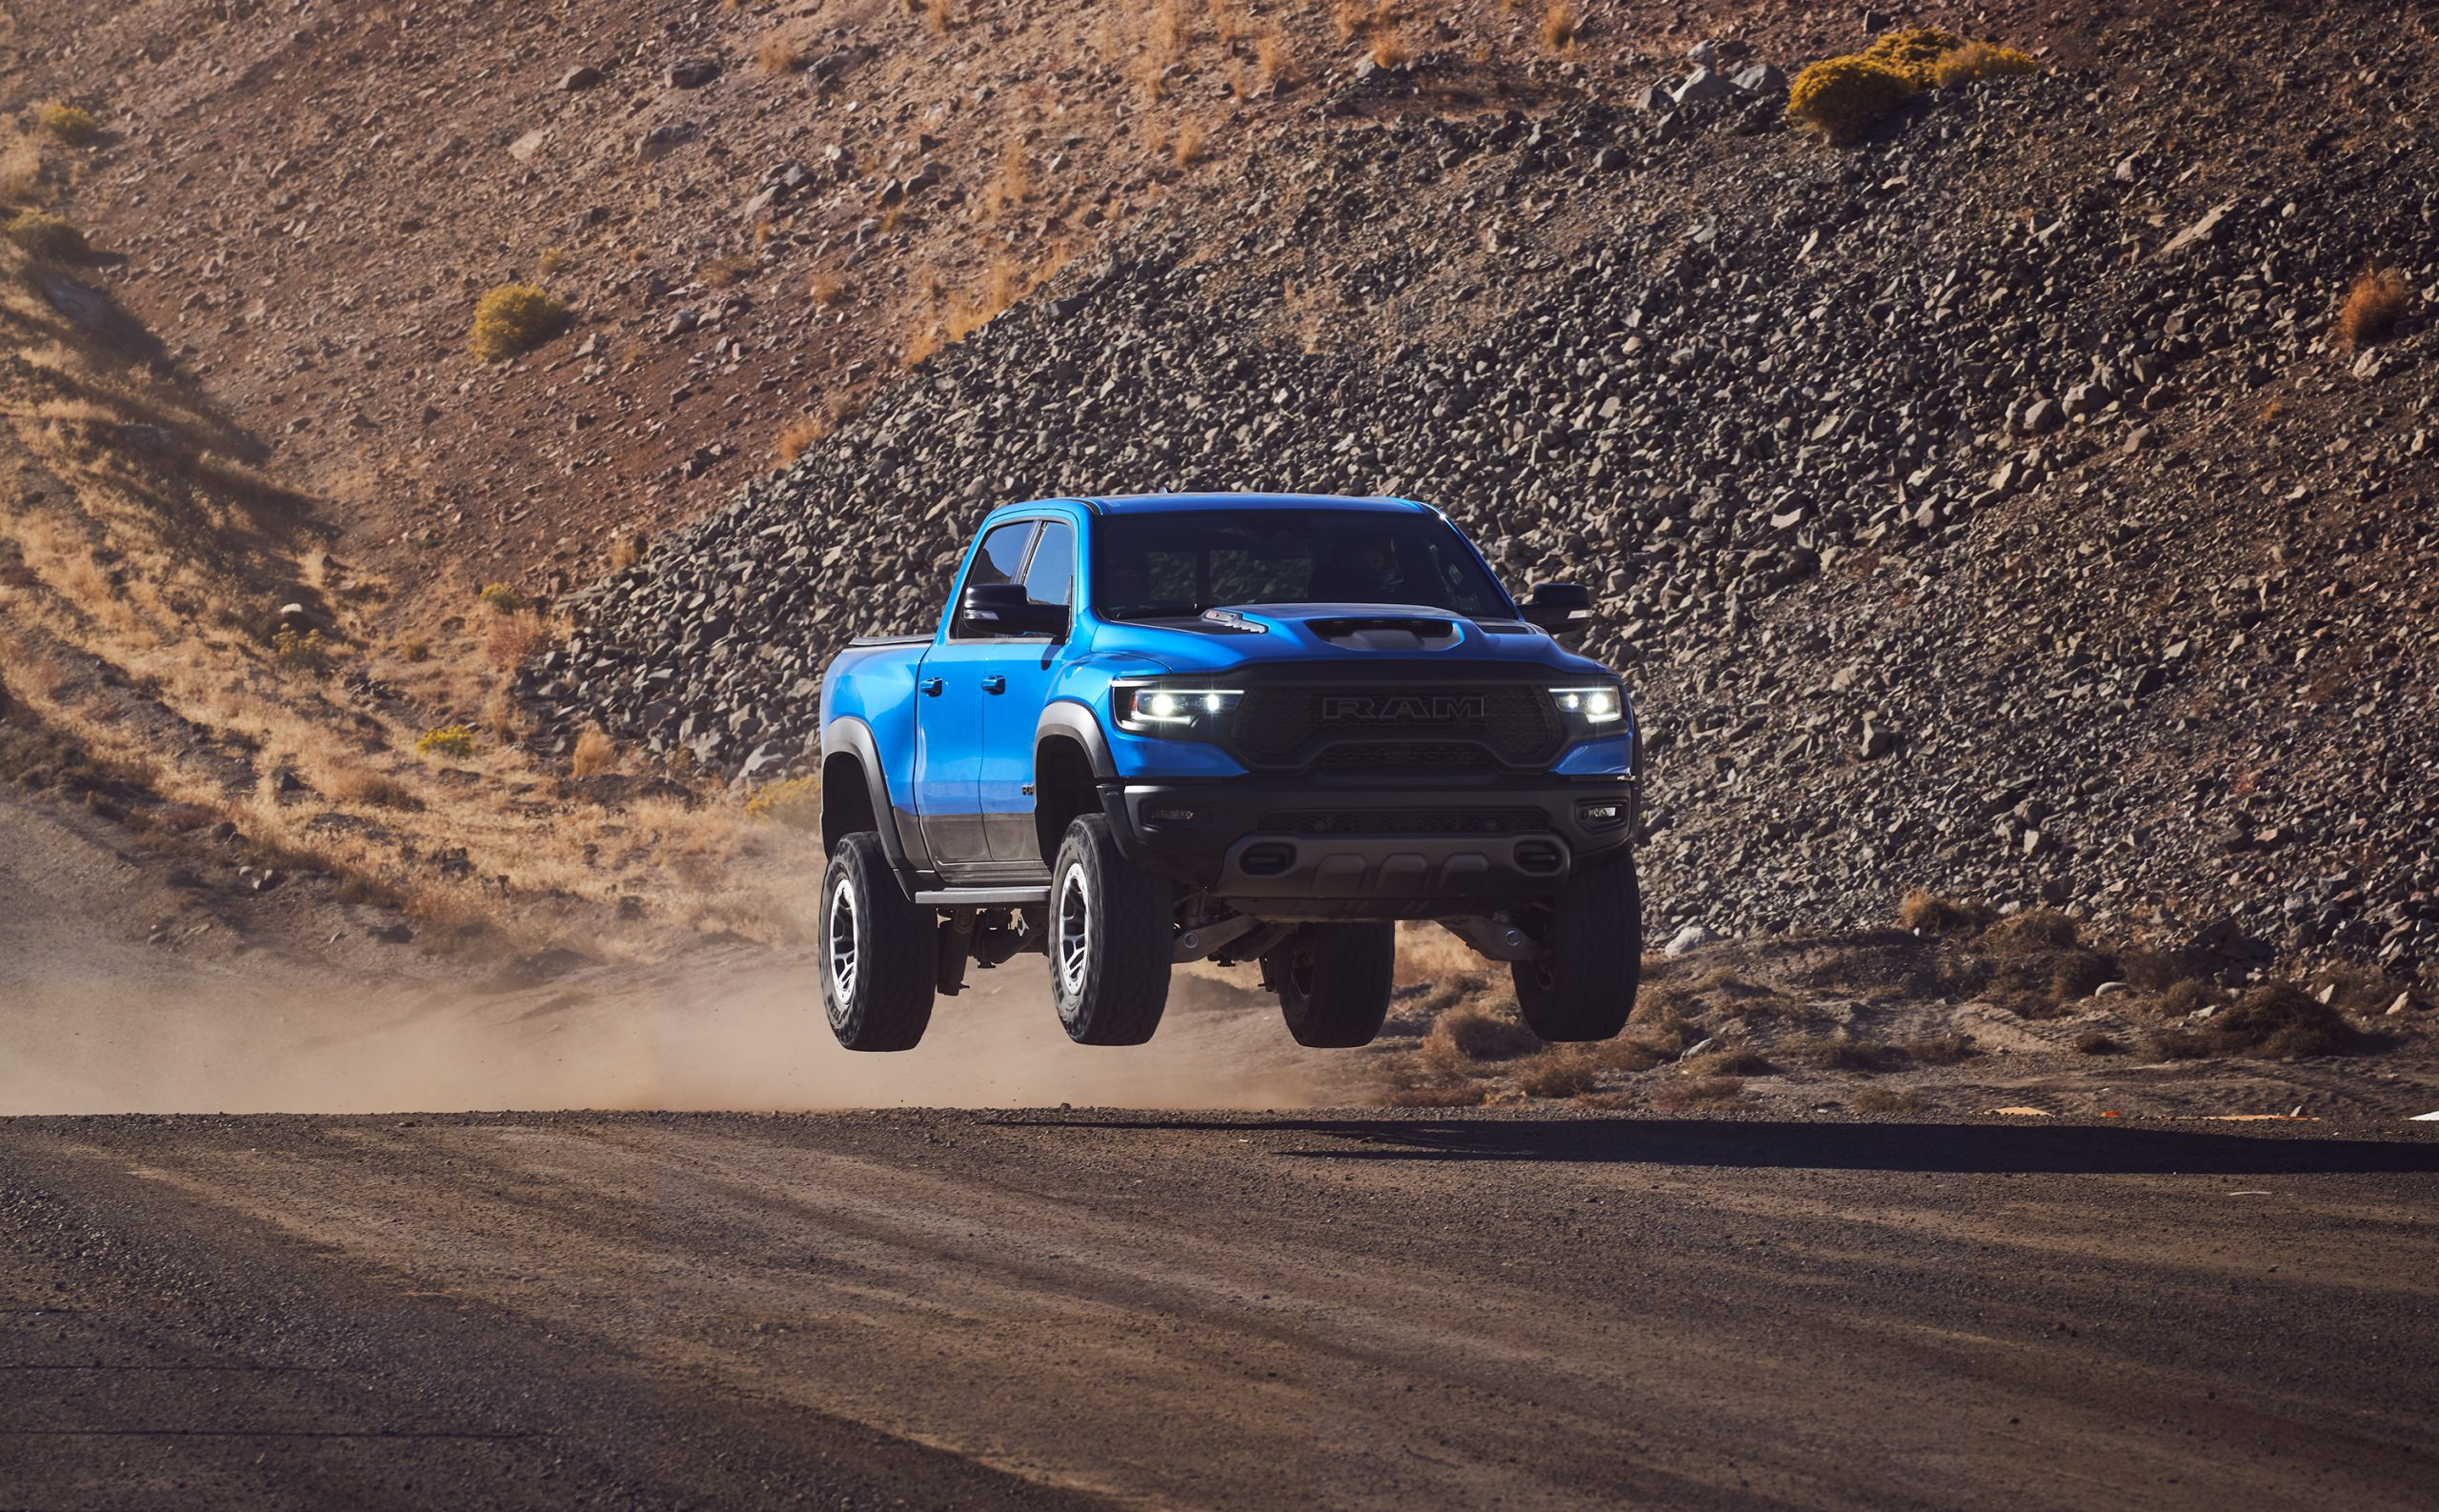 2021 Ram 1500 TRX front three-quarter dirt track dynamic action airborne blue